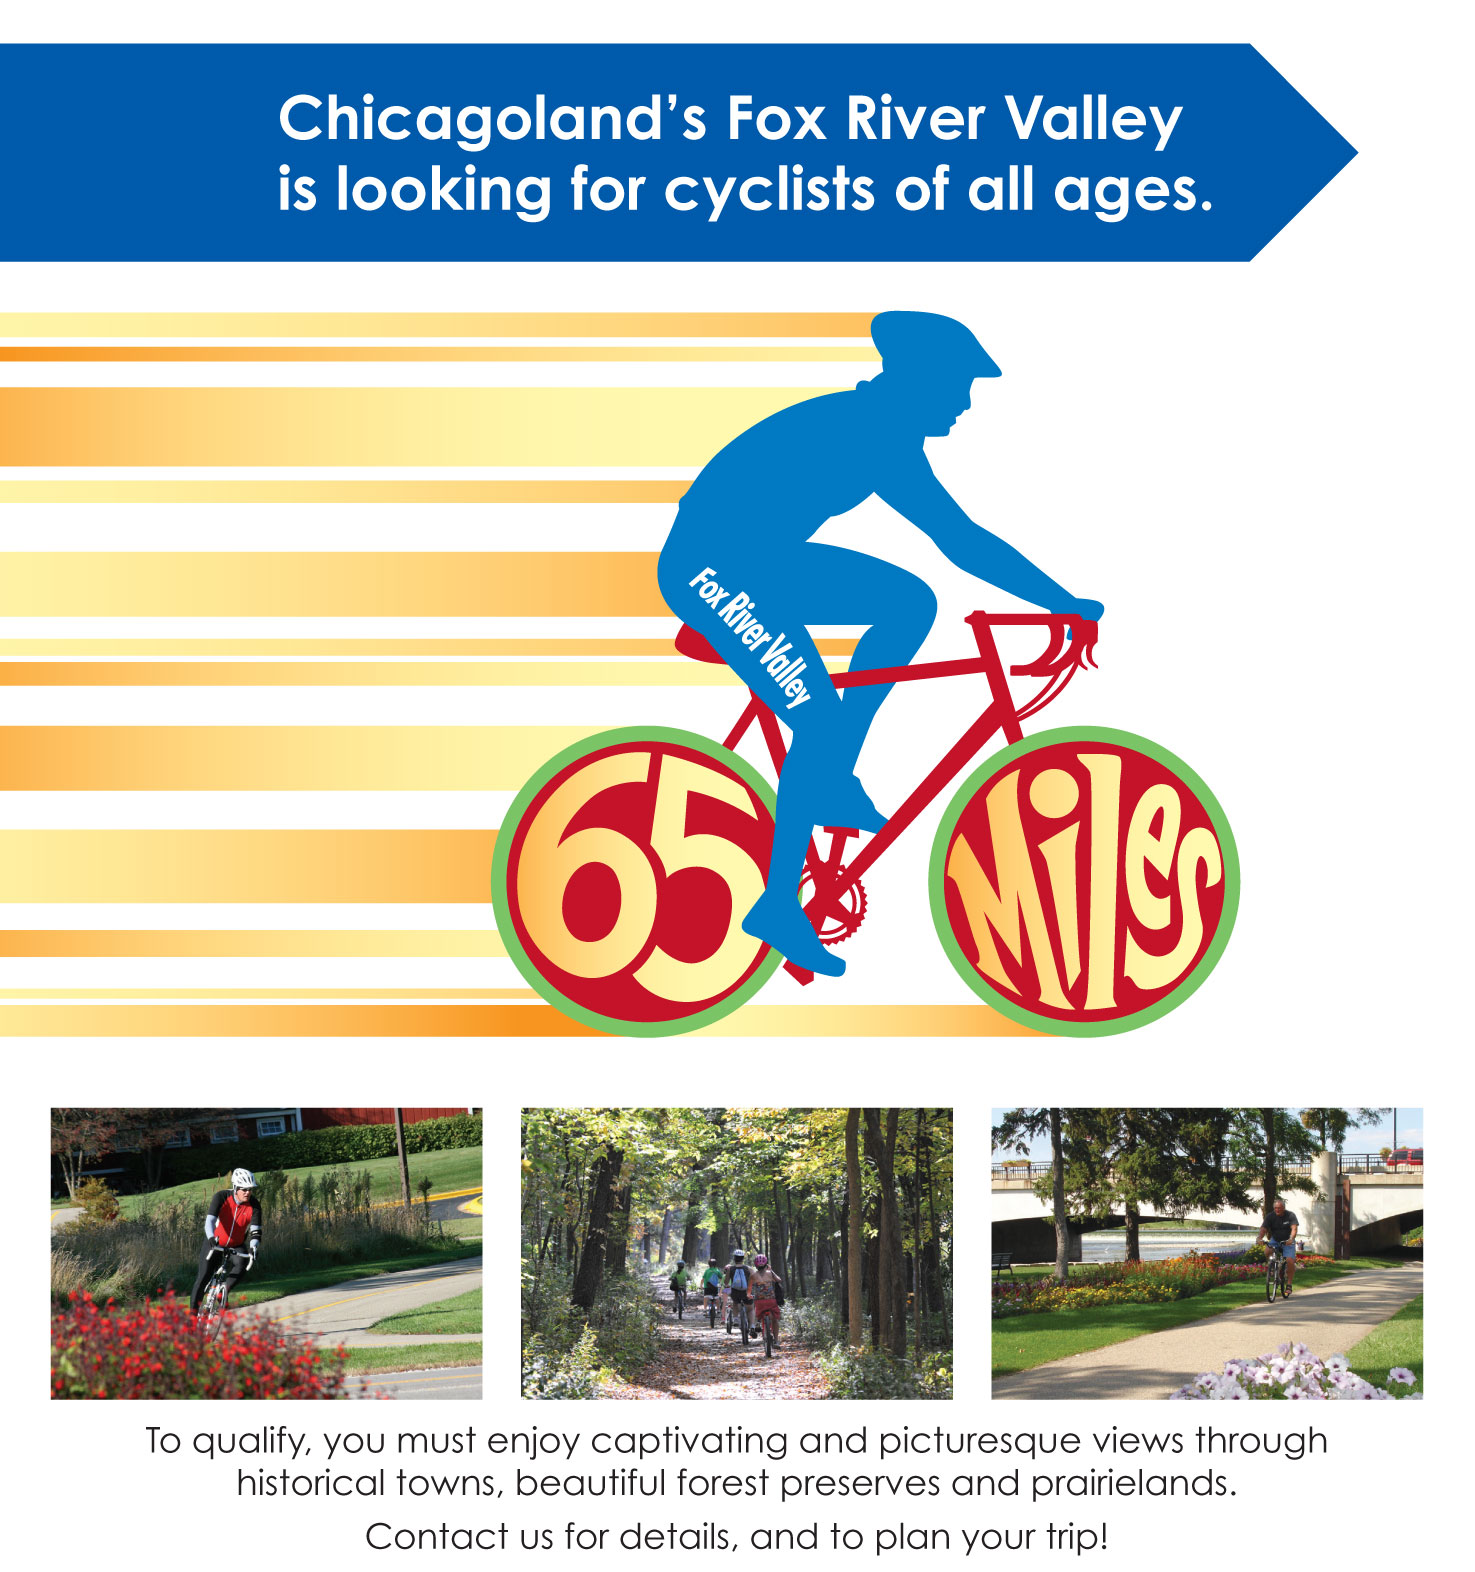 Chicagoland's Fox River Valley is looking for cyclists of all ages to enjoy 65 miles of trails!